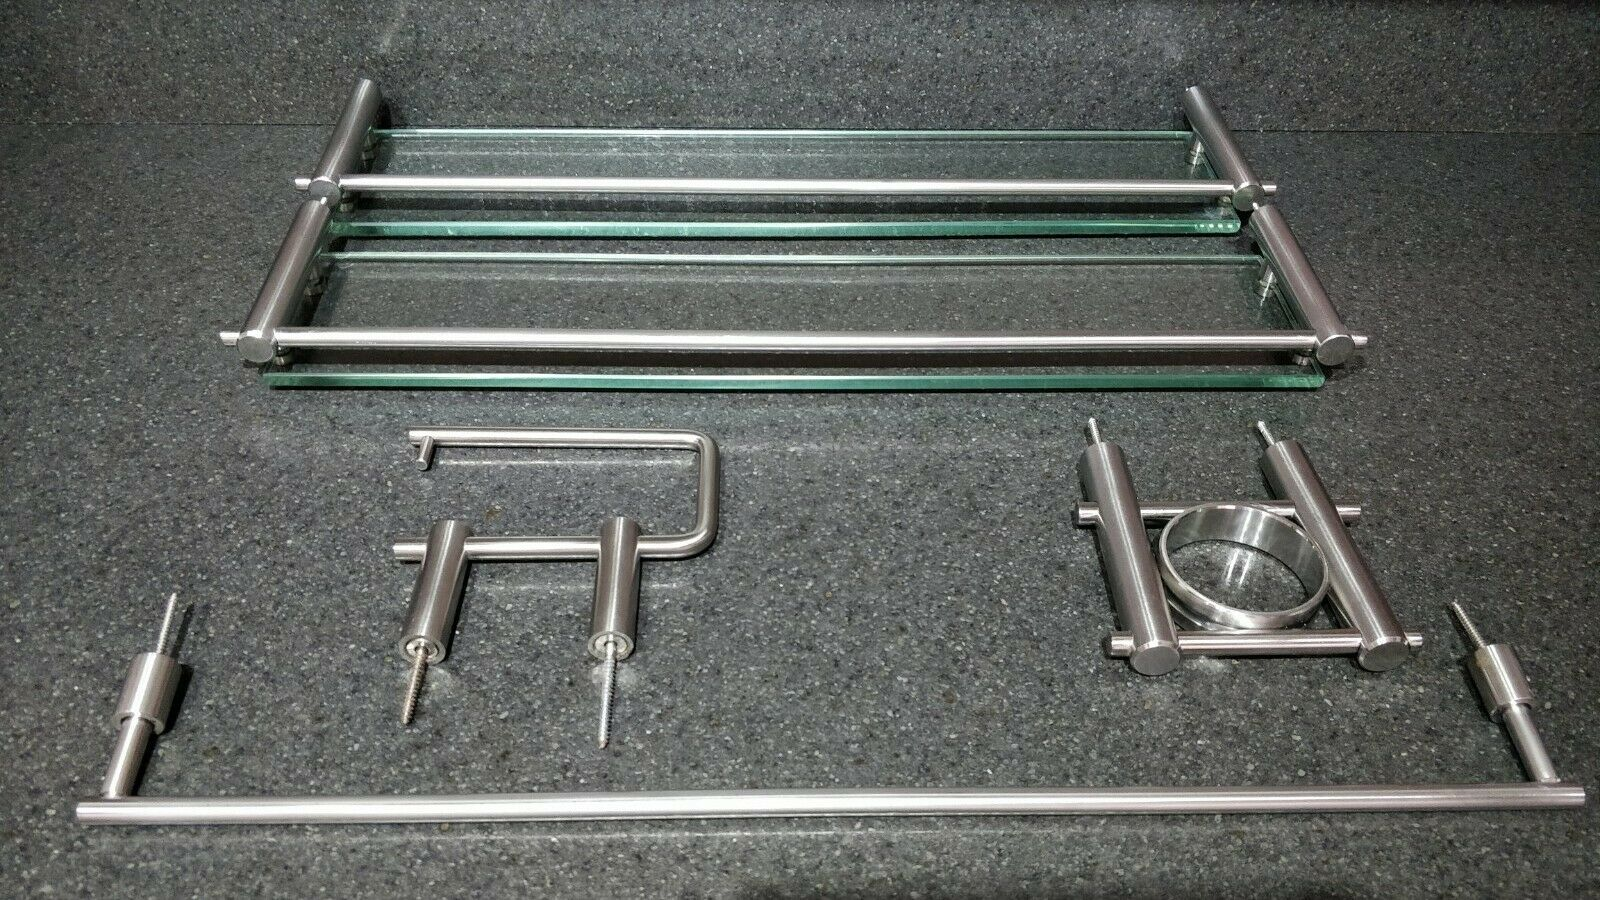 Brushed Stainless Steel Bathroom Accessories